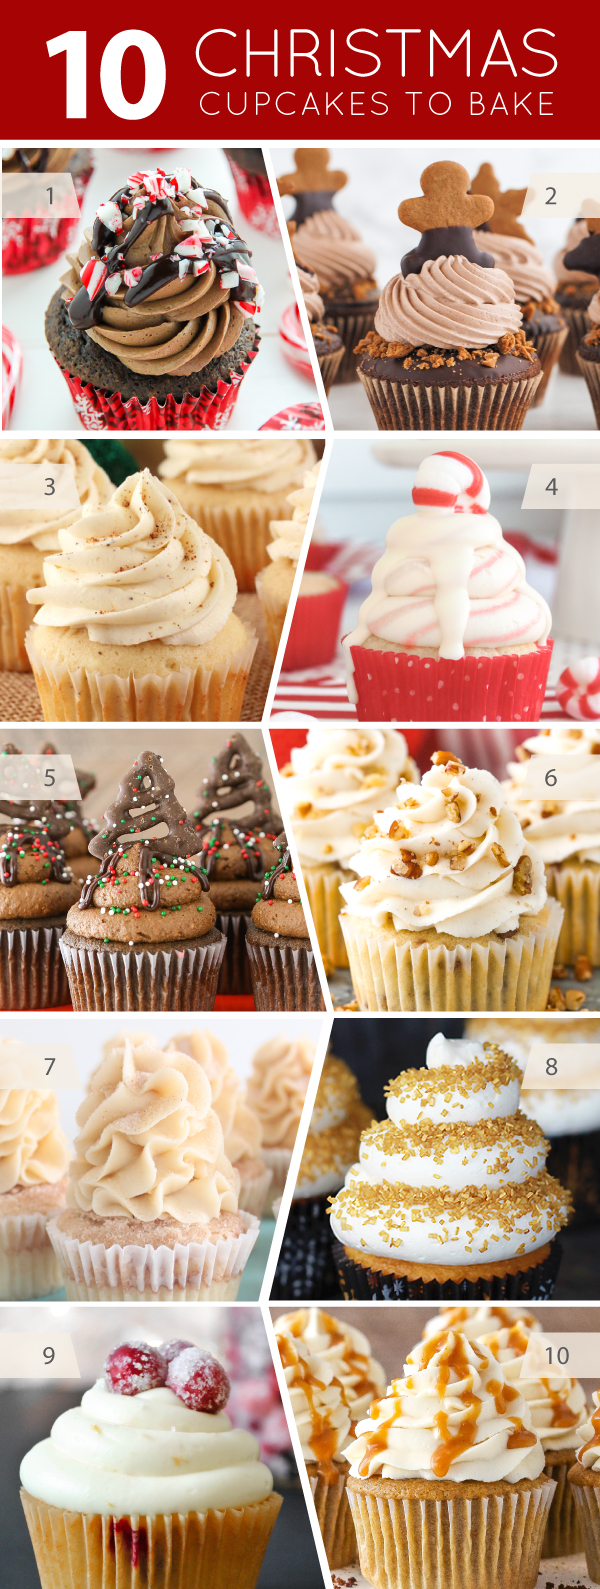 10 Christmas Cupcakes to Bake | on TheCakeBlog.com